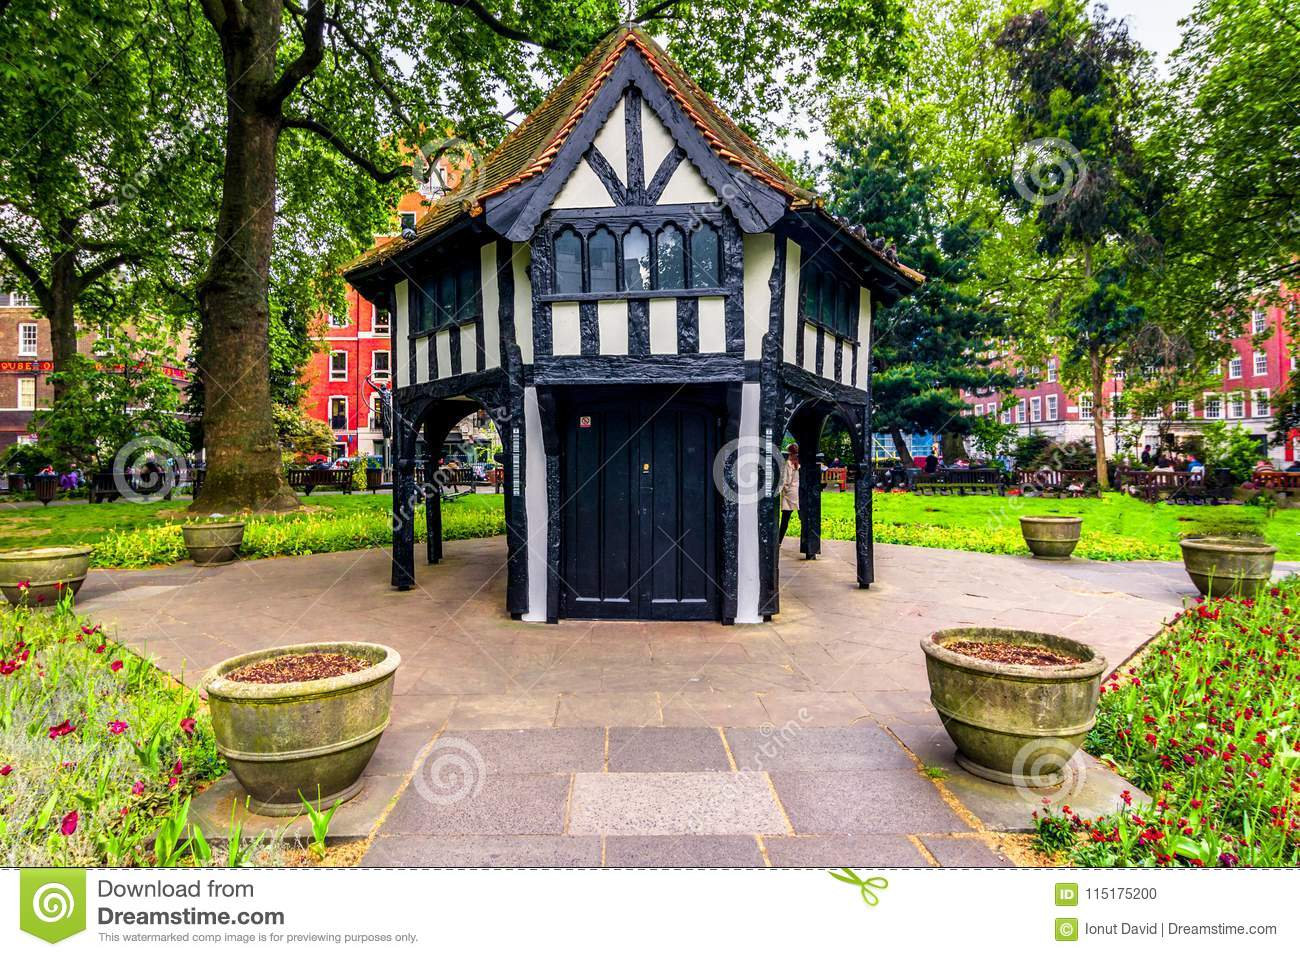 London, The United Kingdom of Great Britain: British architecture in a park